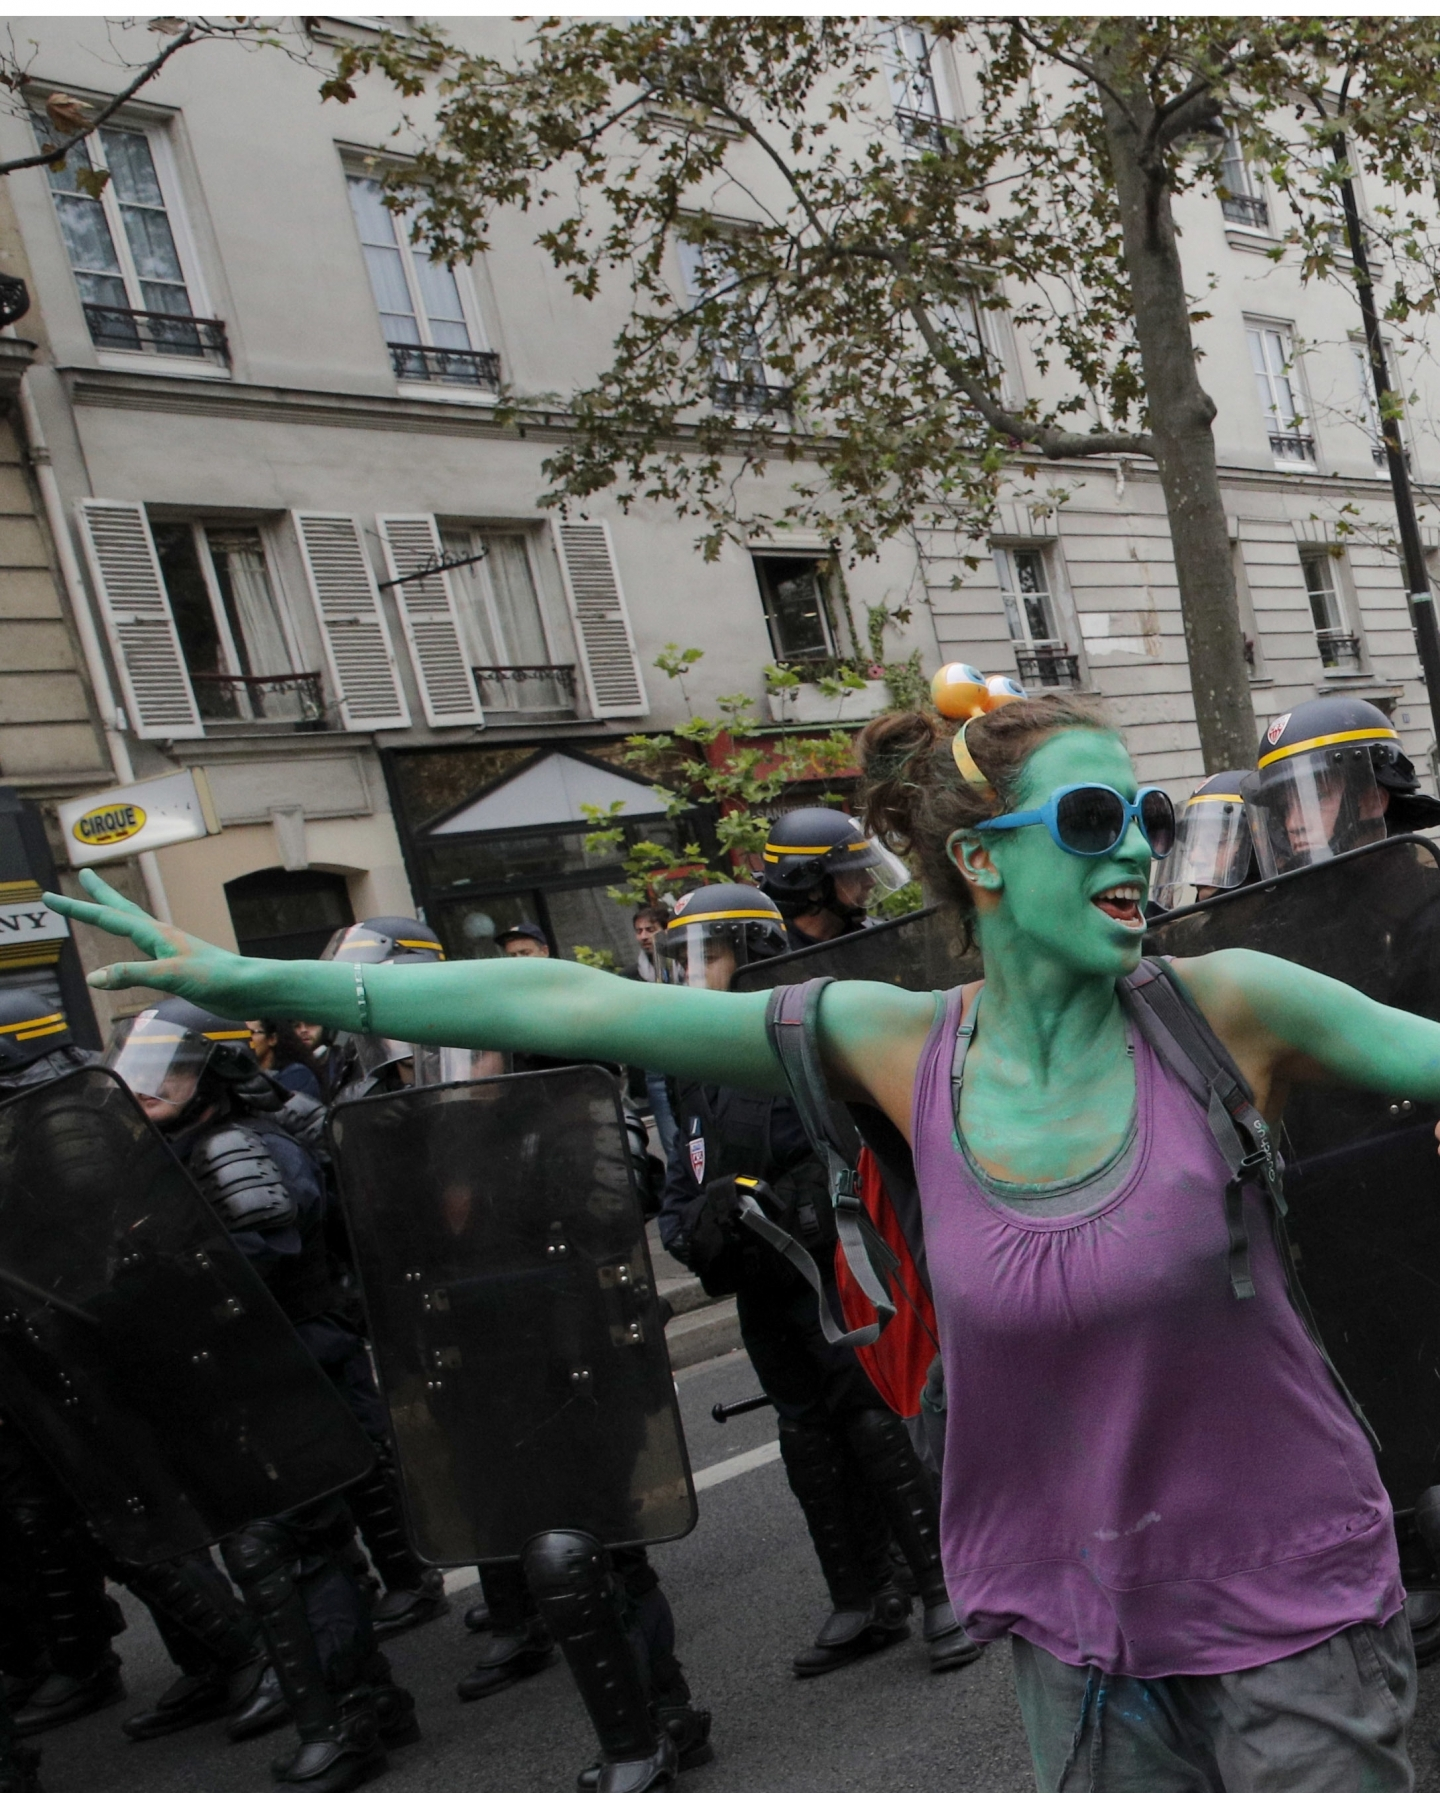 Demonstrators dance next to riot policemen during clashes in Paris over labor reforms (AP Photo/Christophe Ena)